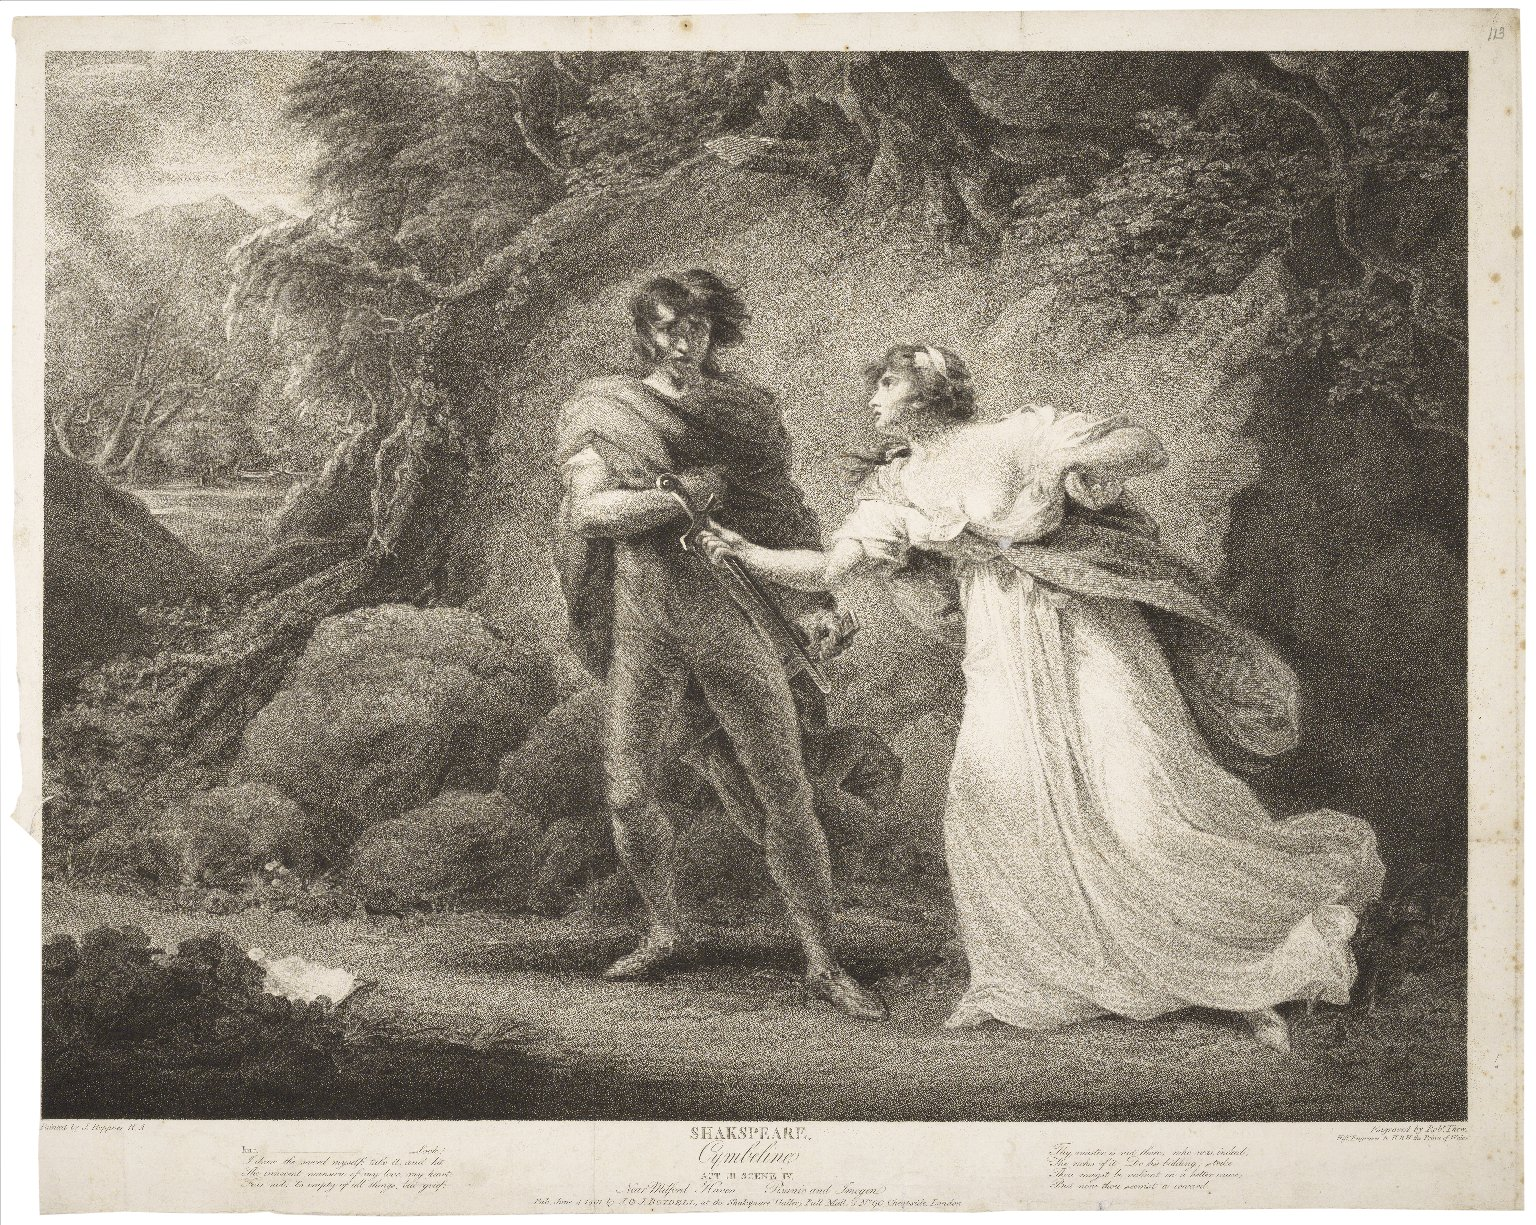 Cymbeline, Act III, scene IV, near Milford Haven: Pisanio and Imogen ... [graphic] / painted by J. Hoppner ; engraved by Robt. Thew.